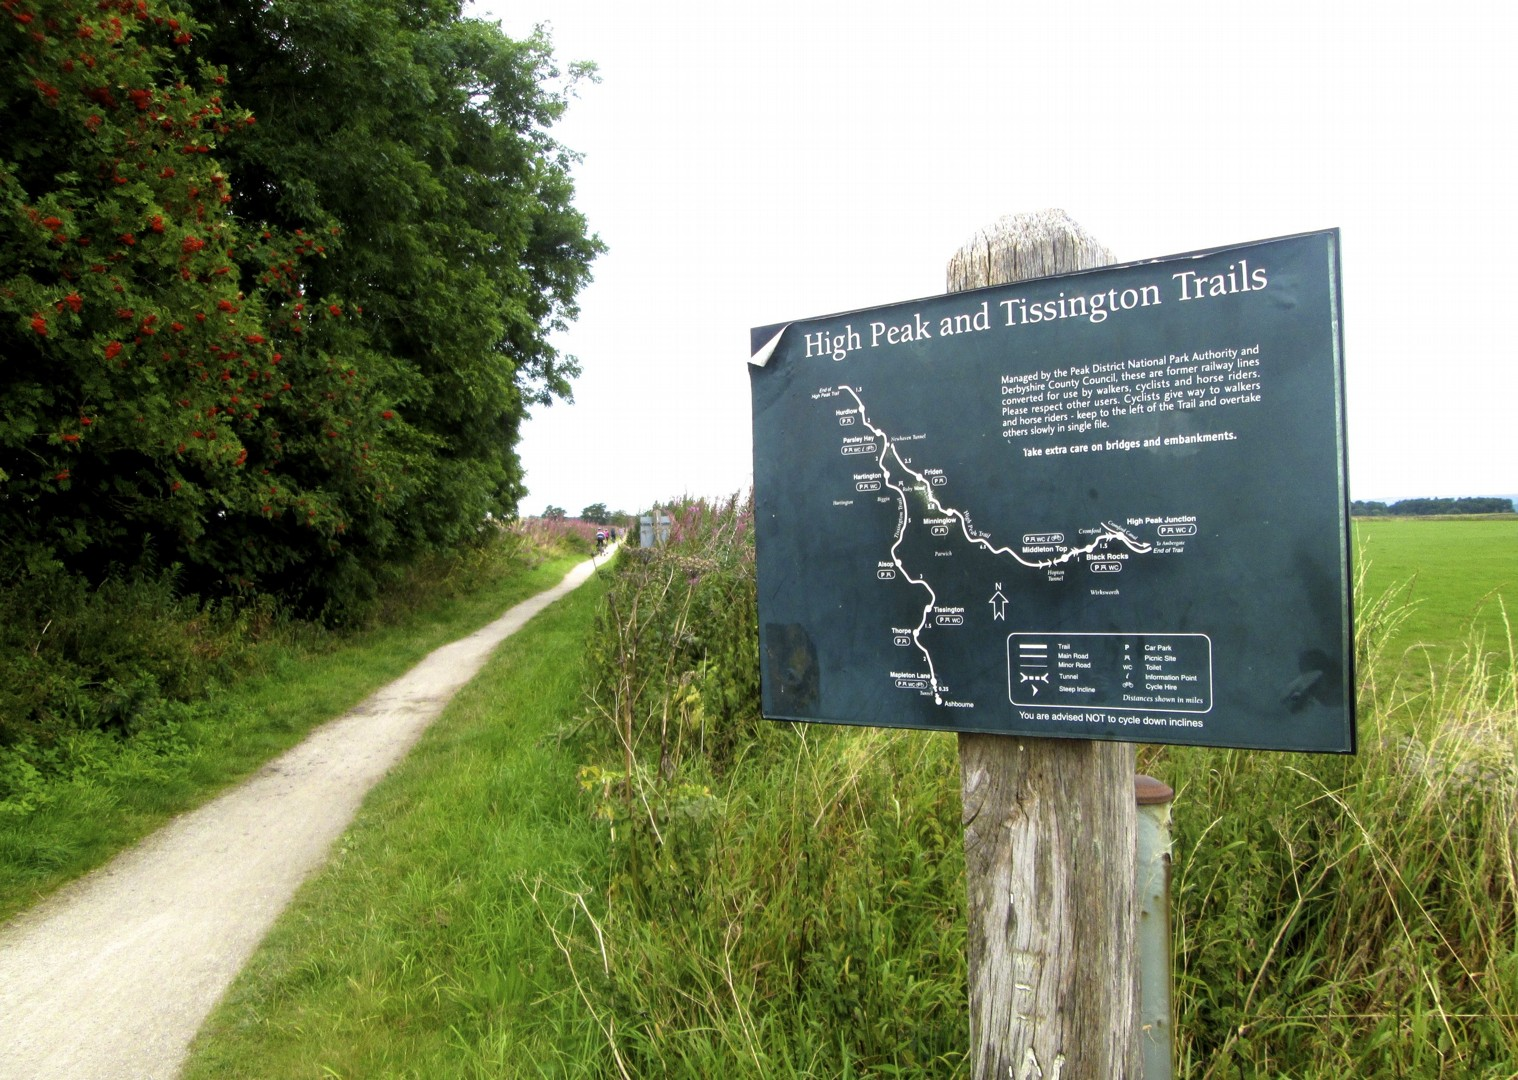 leisure-cycling-holiday-dovedale-tissingtontrail.jpg - UK - Derbyshire Dales - Dovedale - Guided Leisure Cycling Holiday - Leisure Cycling